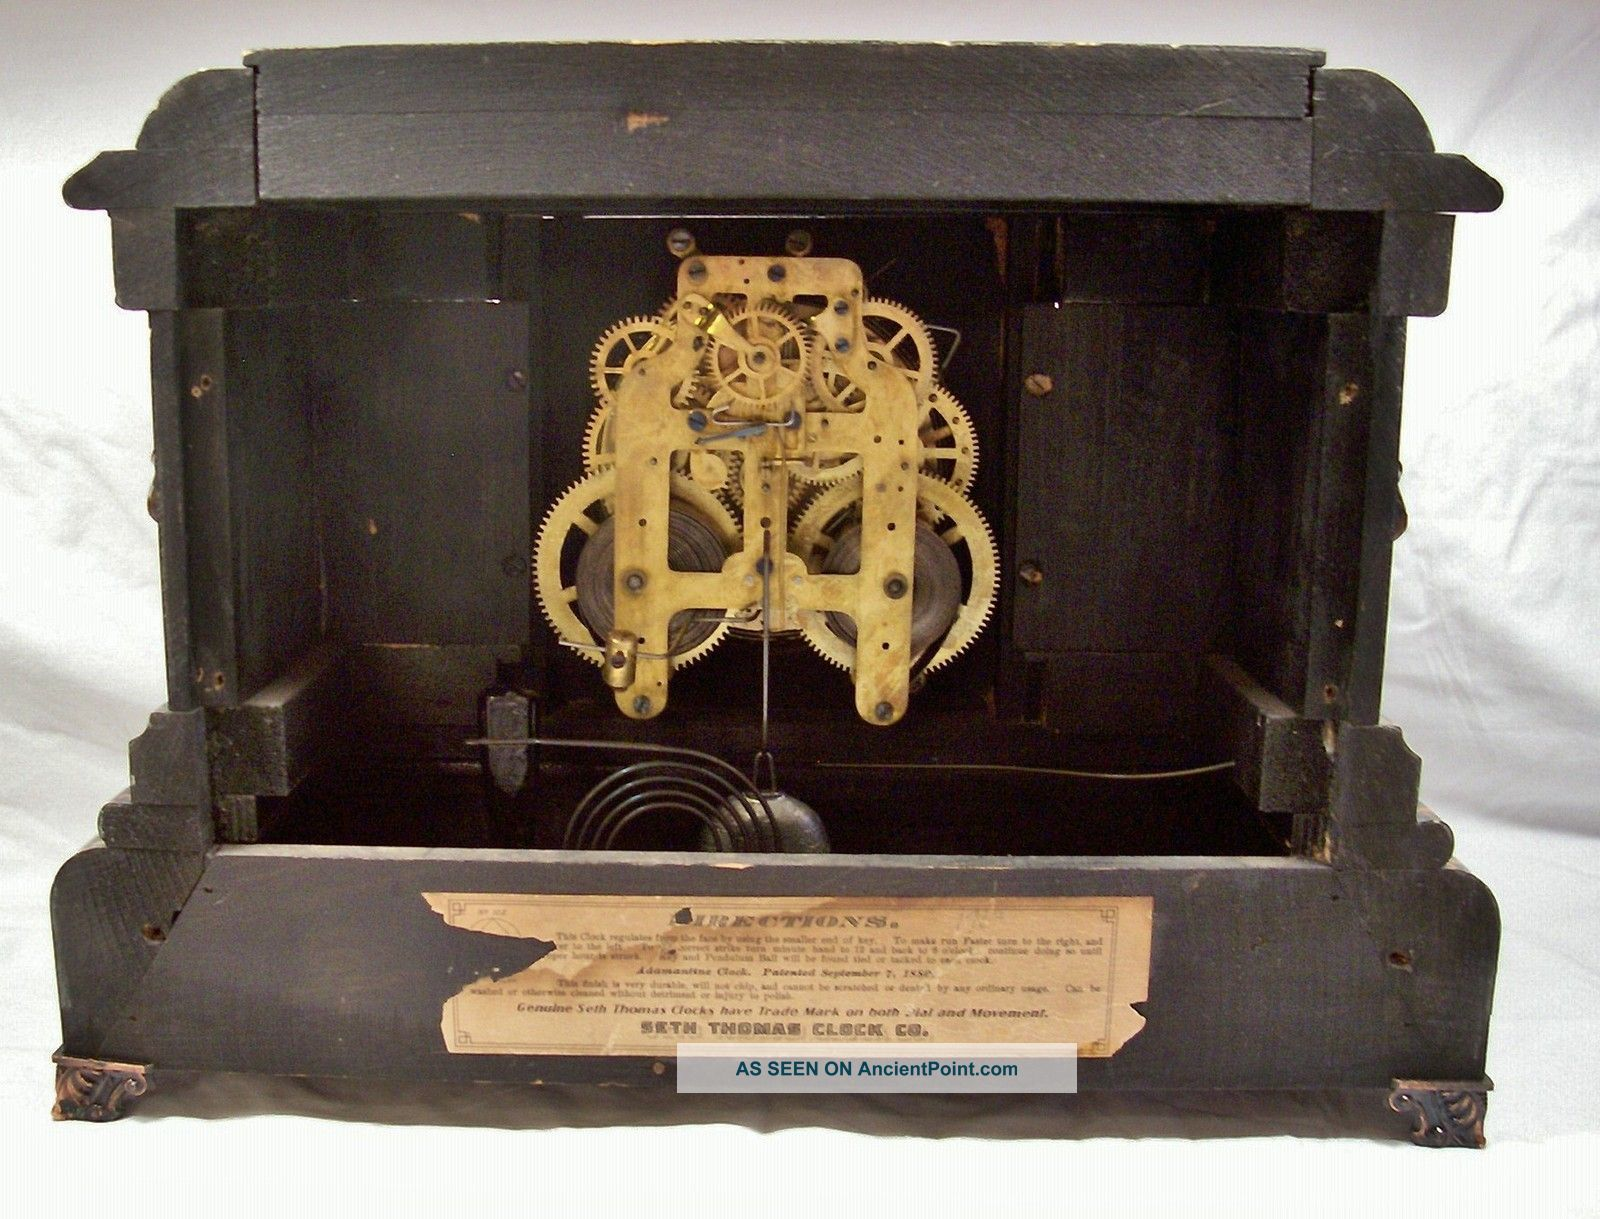 dating seth thomas adamantine mantel clock To identify a seth thomas mantel pendulum clock, determine the type of wood the clock is made of, analyze the clock's movements, and check for a decoration on the.